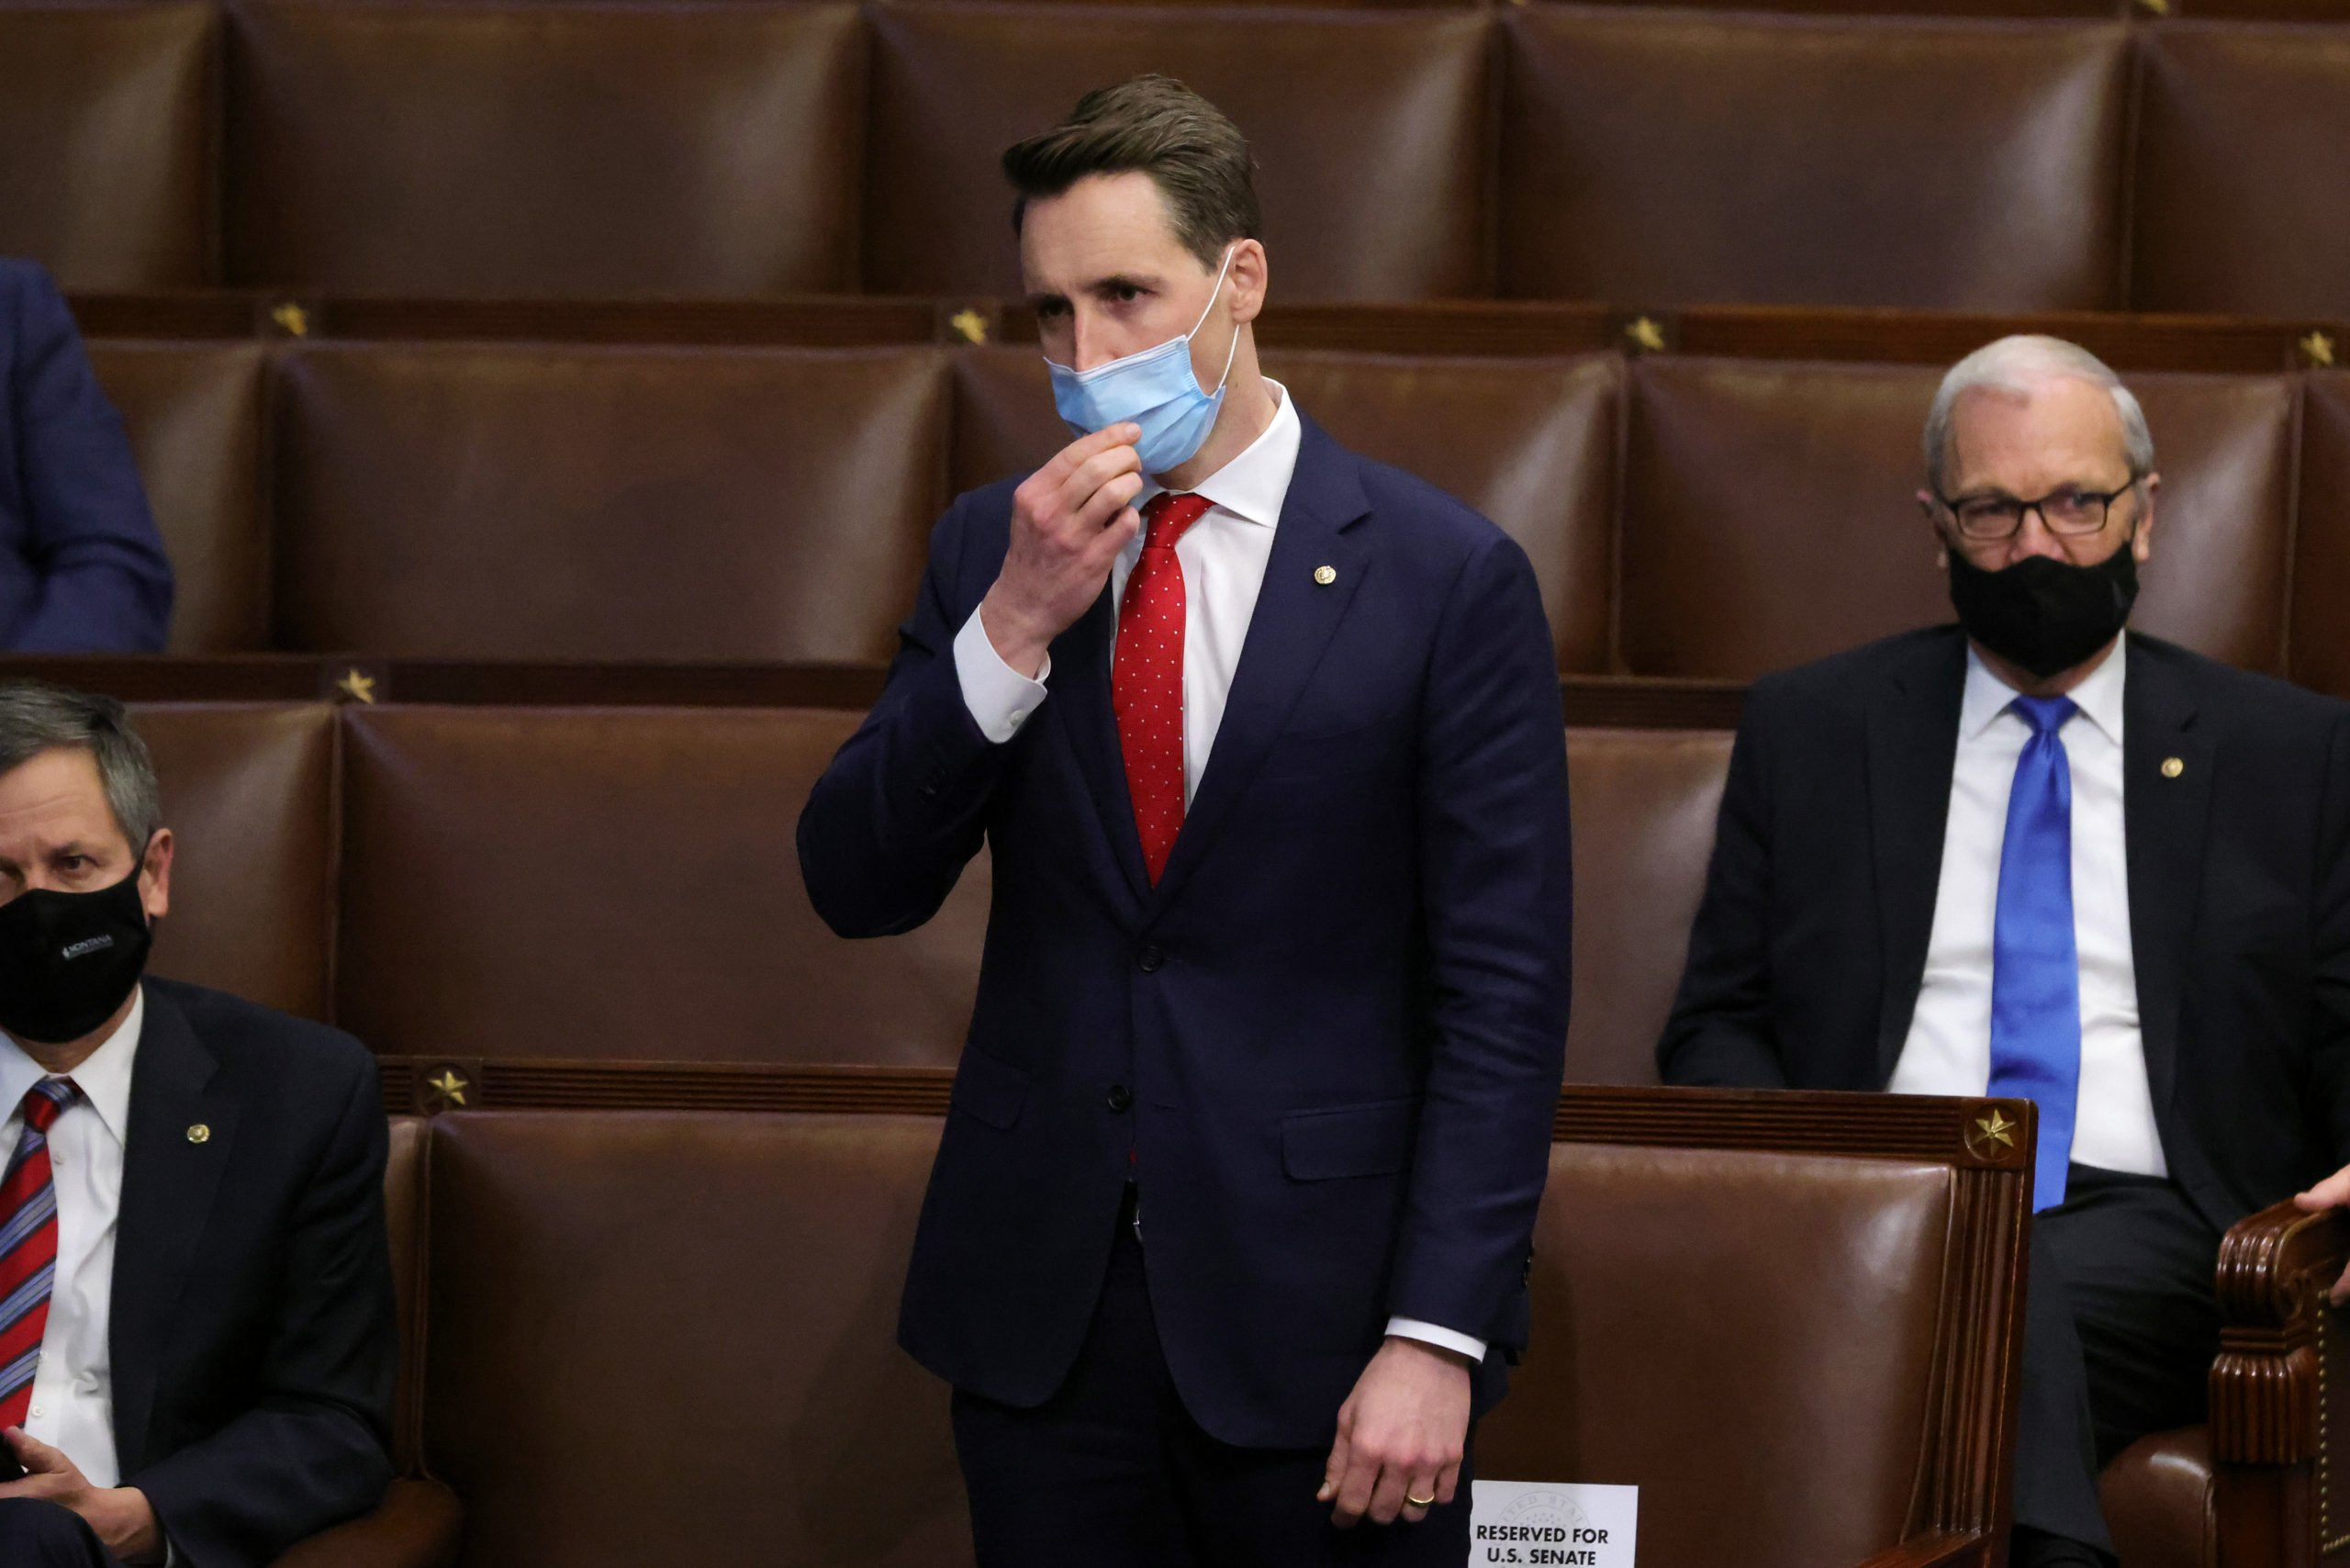 Sen. Josh Hawley (R-MO) signs on to the Pennsylvania objection in the House Chamber during a reconvening of a joint session of Congress on January 06, 2021 in Washington, DC. (Win McNamee/Getty Images)